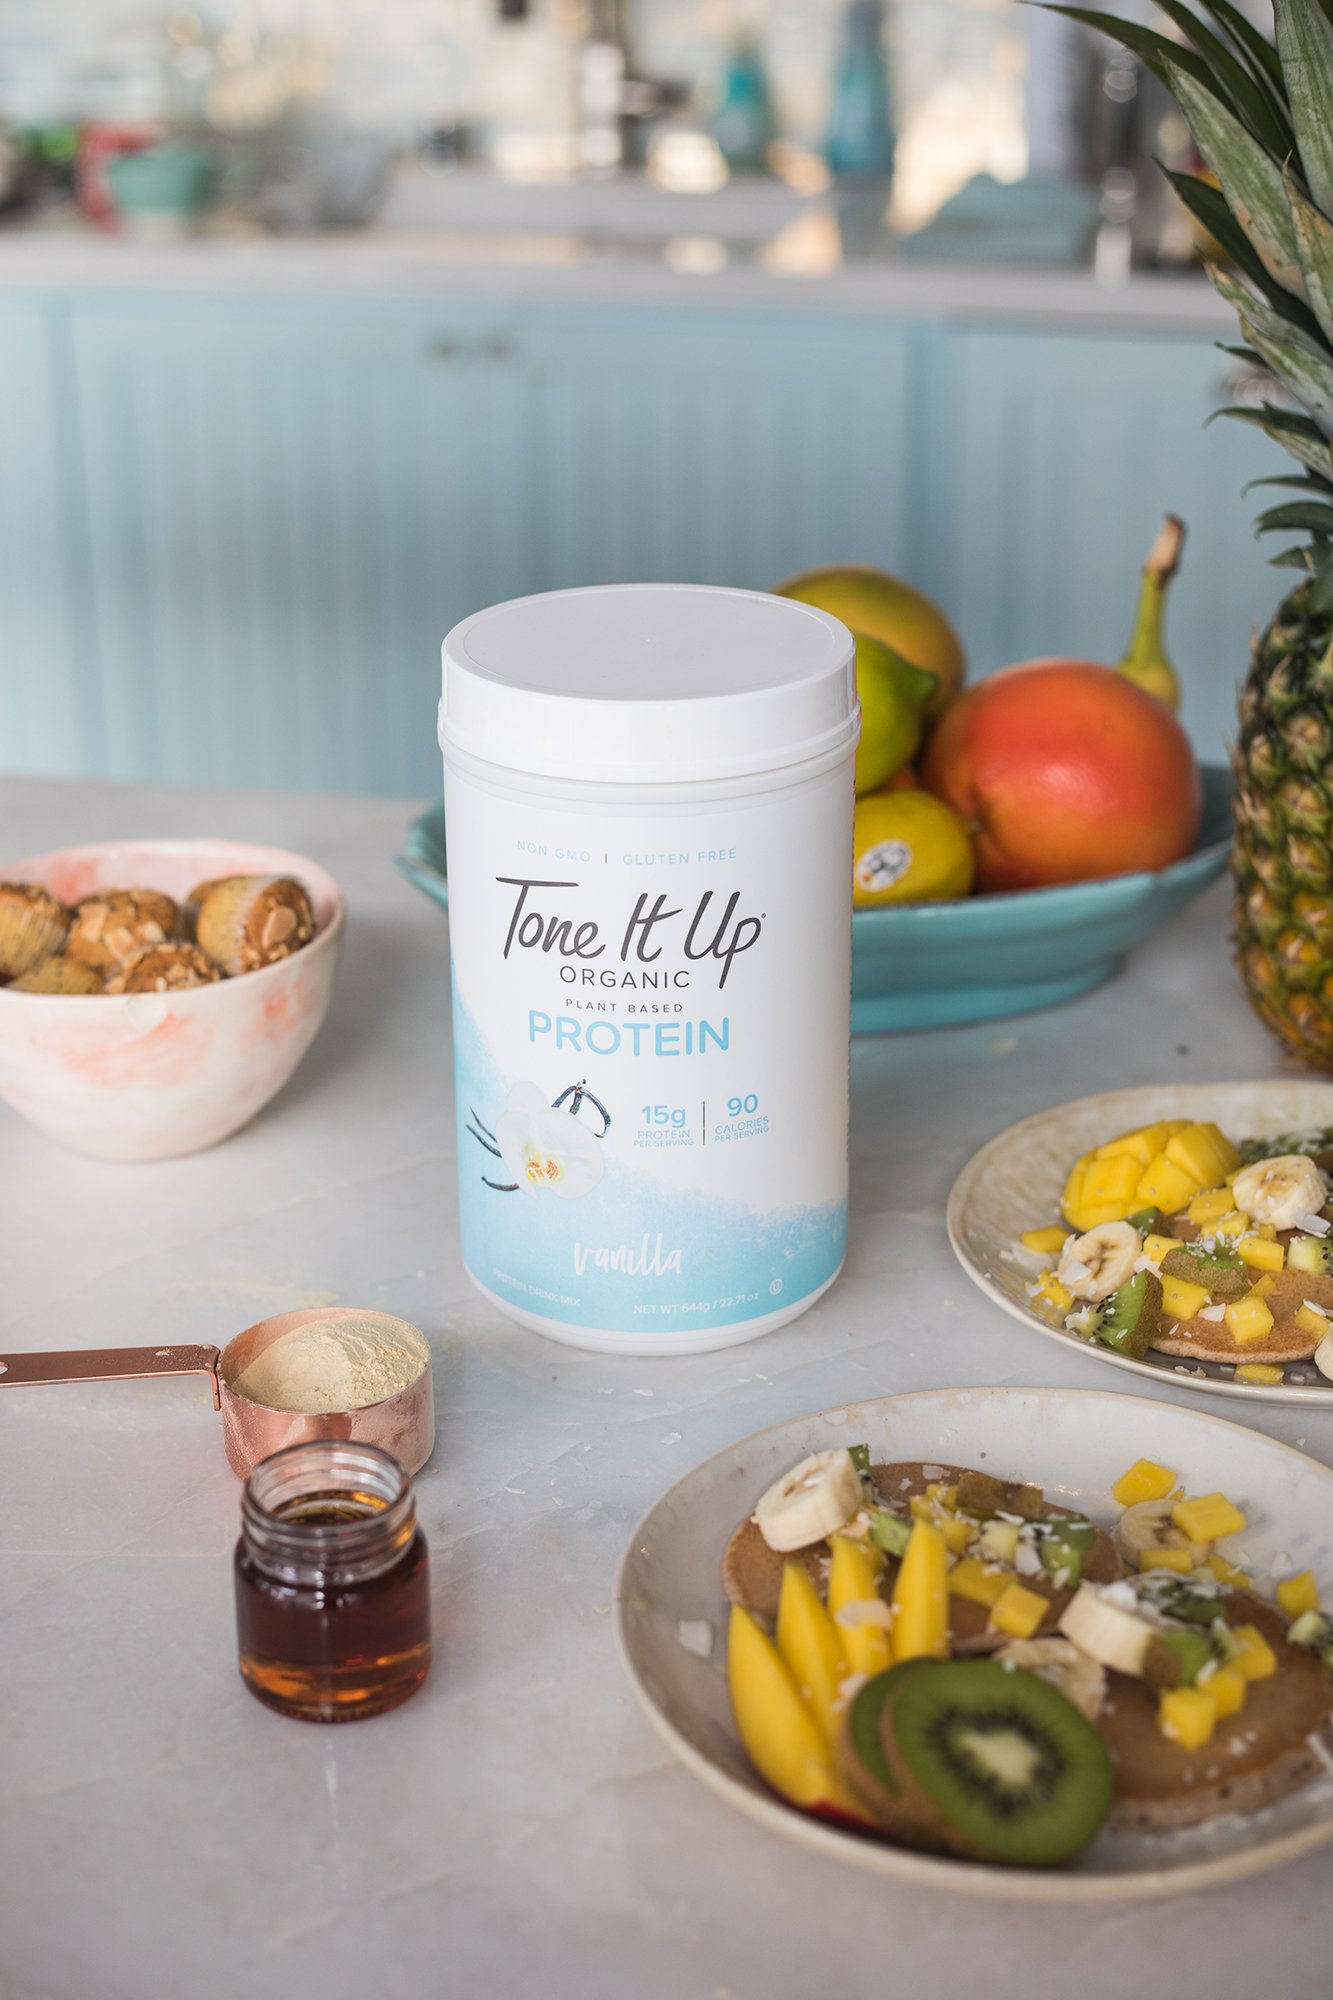 Tone It Up Organic Vegan Vanilla Protein Powder for Women | 100% Pea Protein Sugar Free Gluten Free | 15g of Protein | Supports Weight Loss and Lean Muscle | Kosher Non GMO | 1.54lbs by Tone It Up (Image #4)